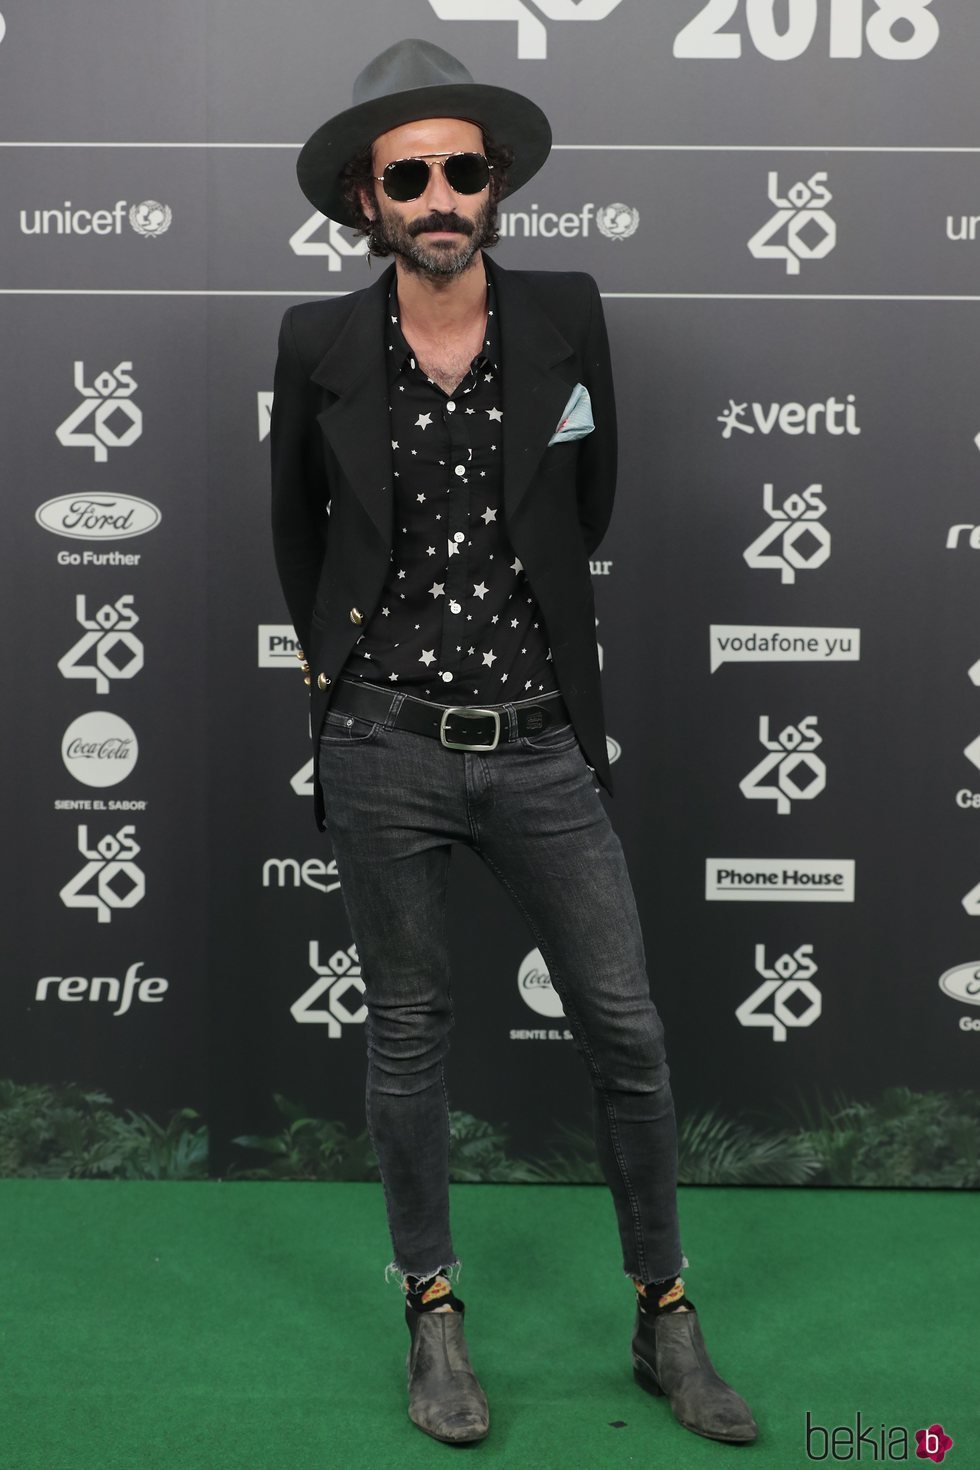 Leiva en Los 40 Music Awards 2018